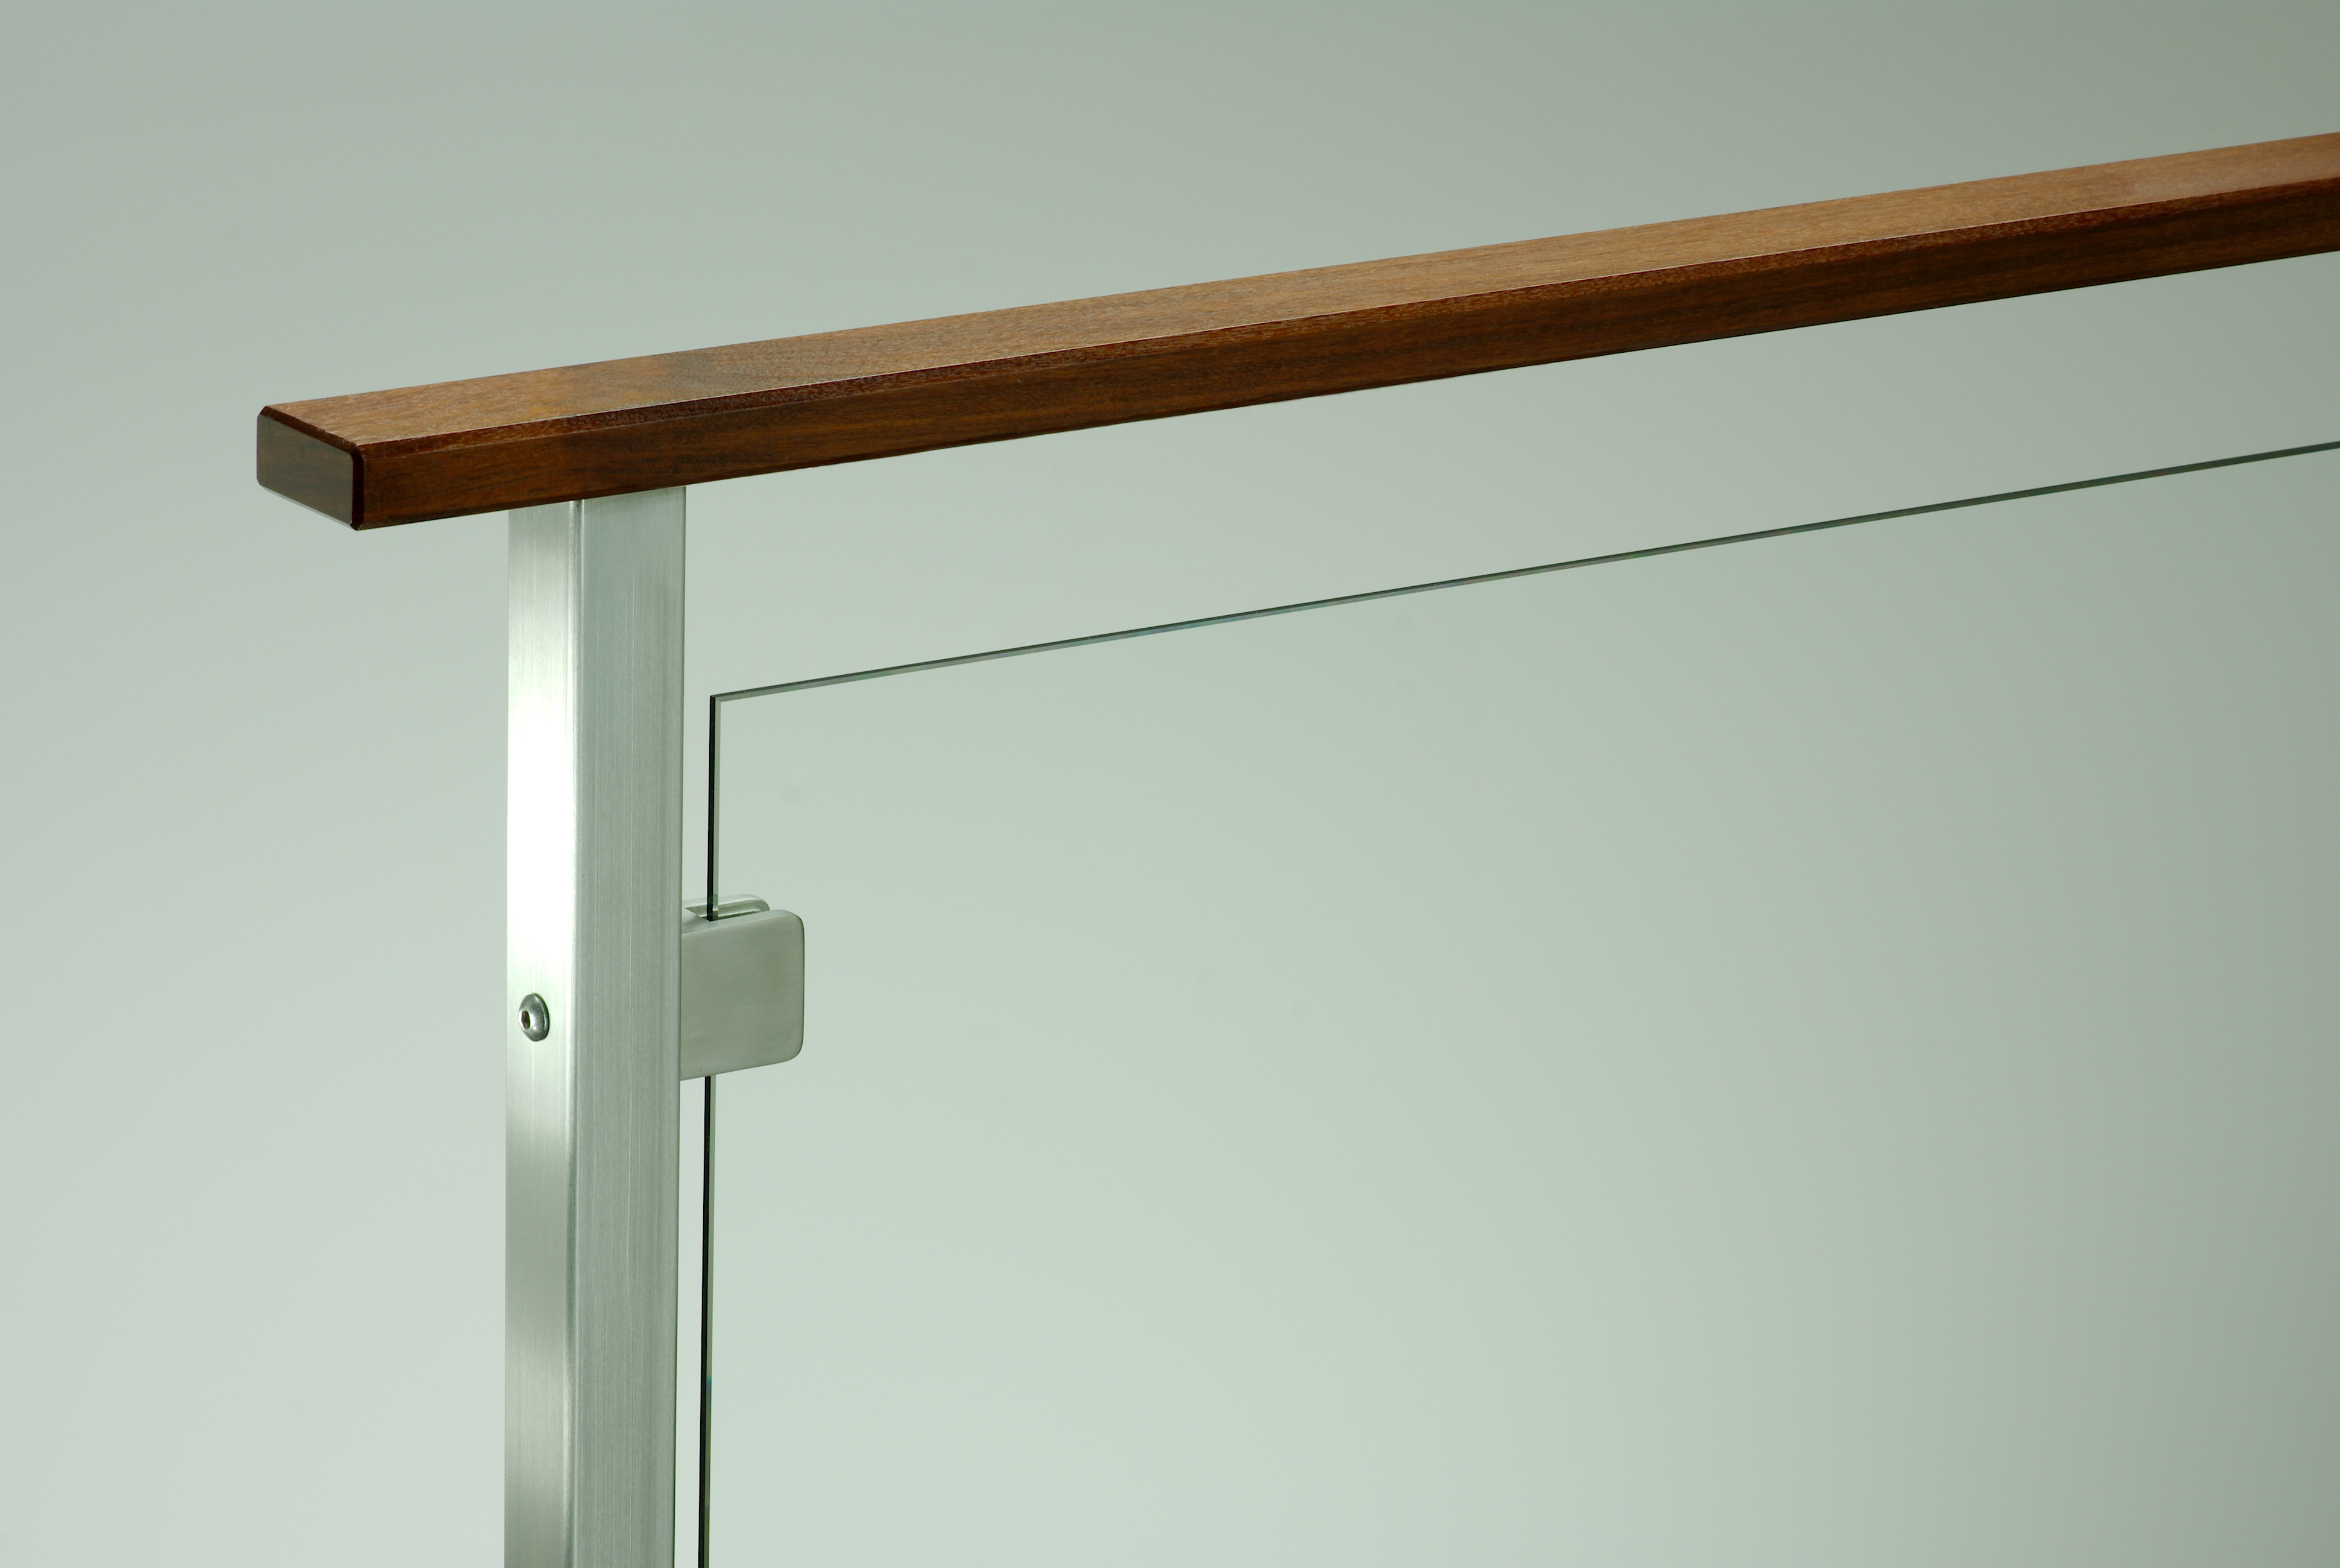 Press Media Agsstainless Com | Wood And Glass Handrail